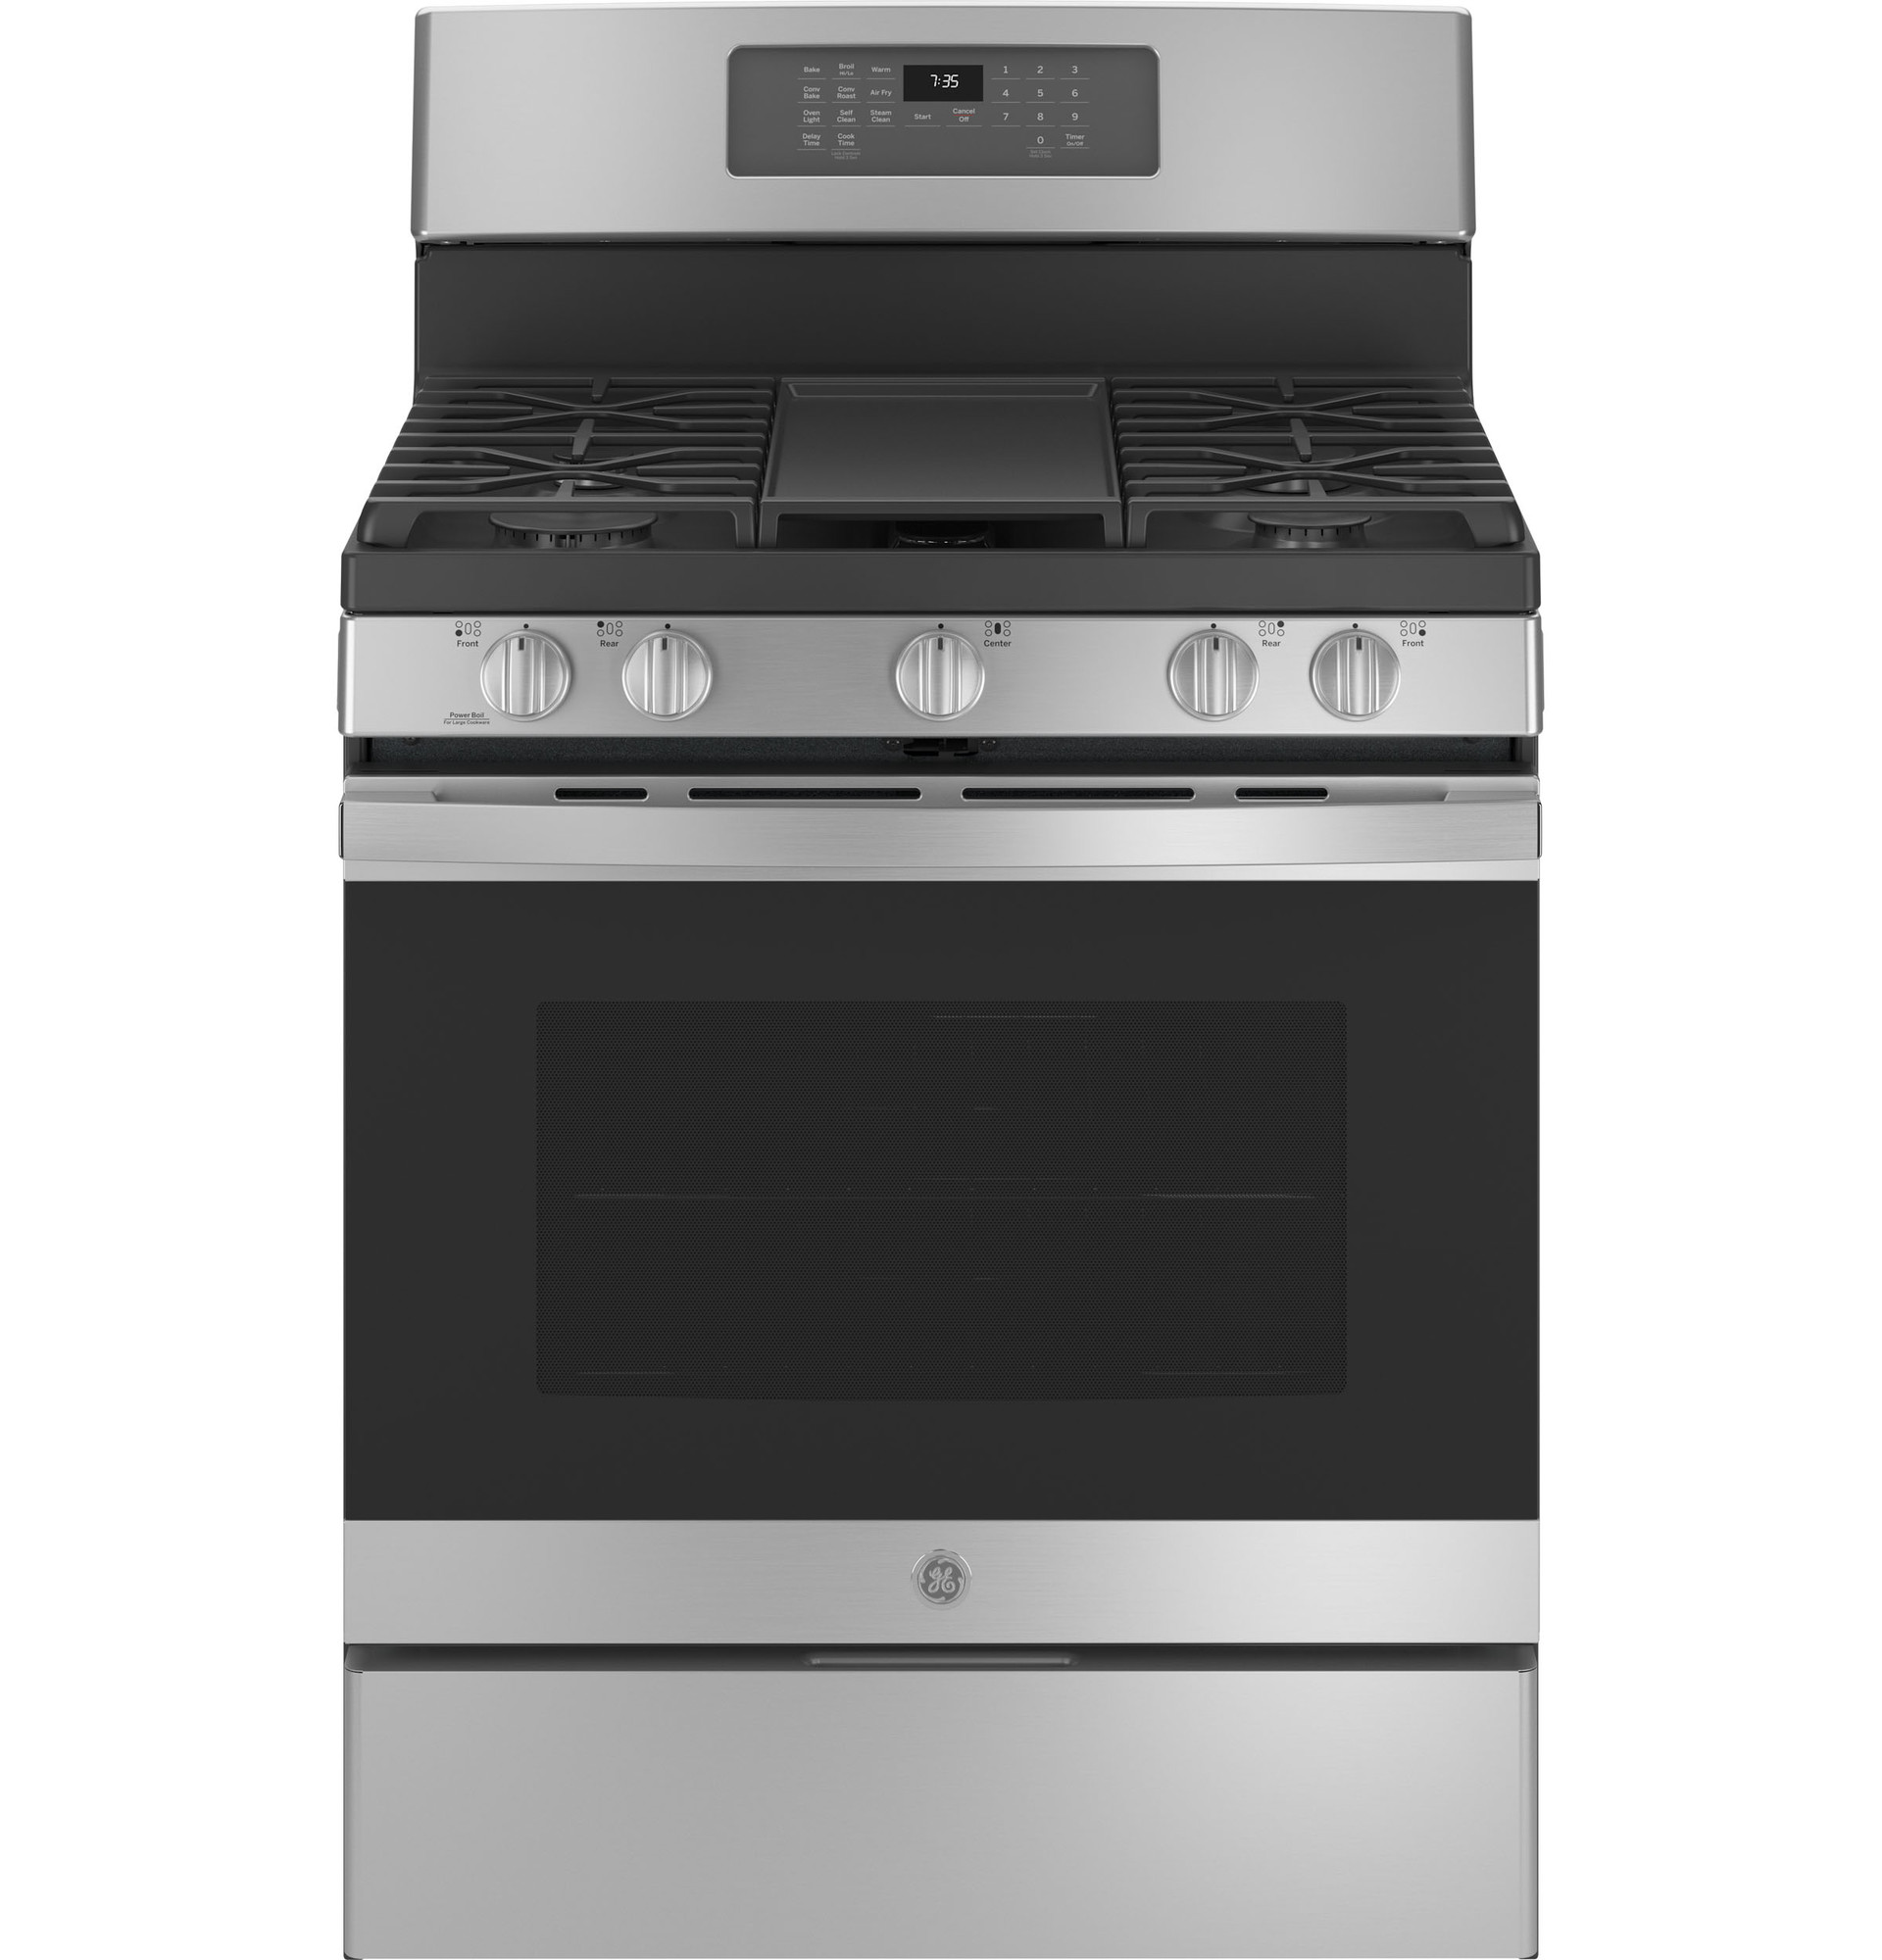 GE Range JCGB735SPSS in Stainless Steel color showcased by Corbeil Electro Store